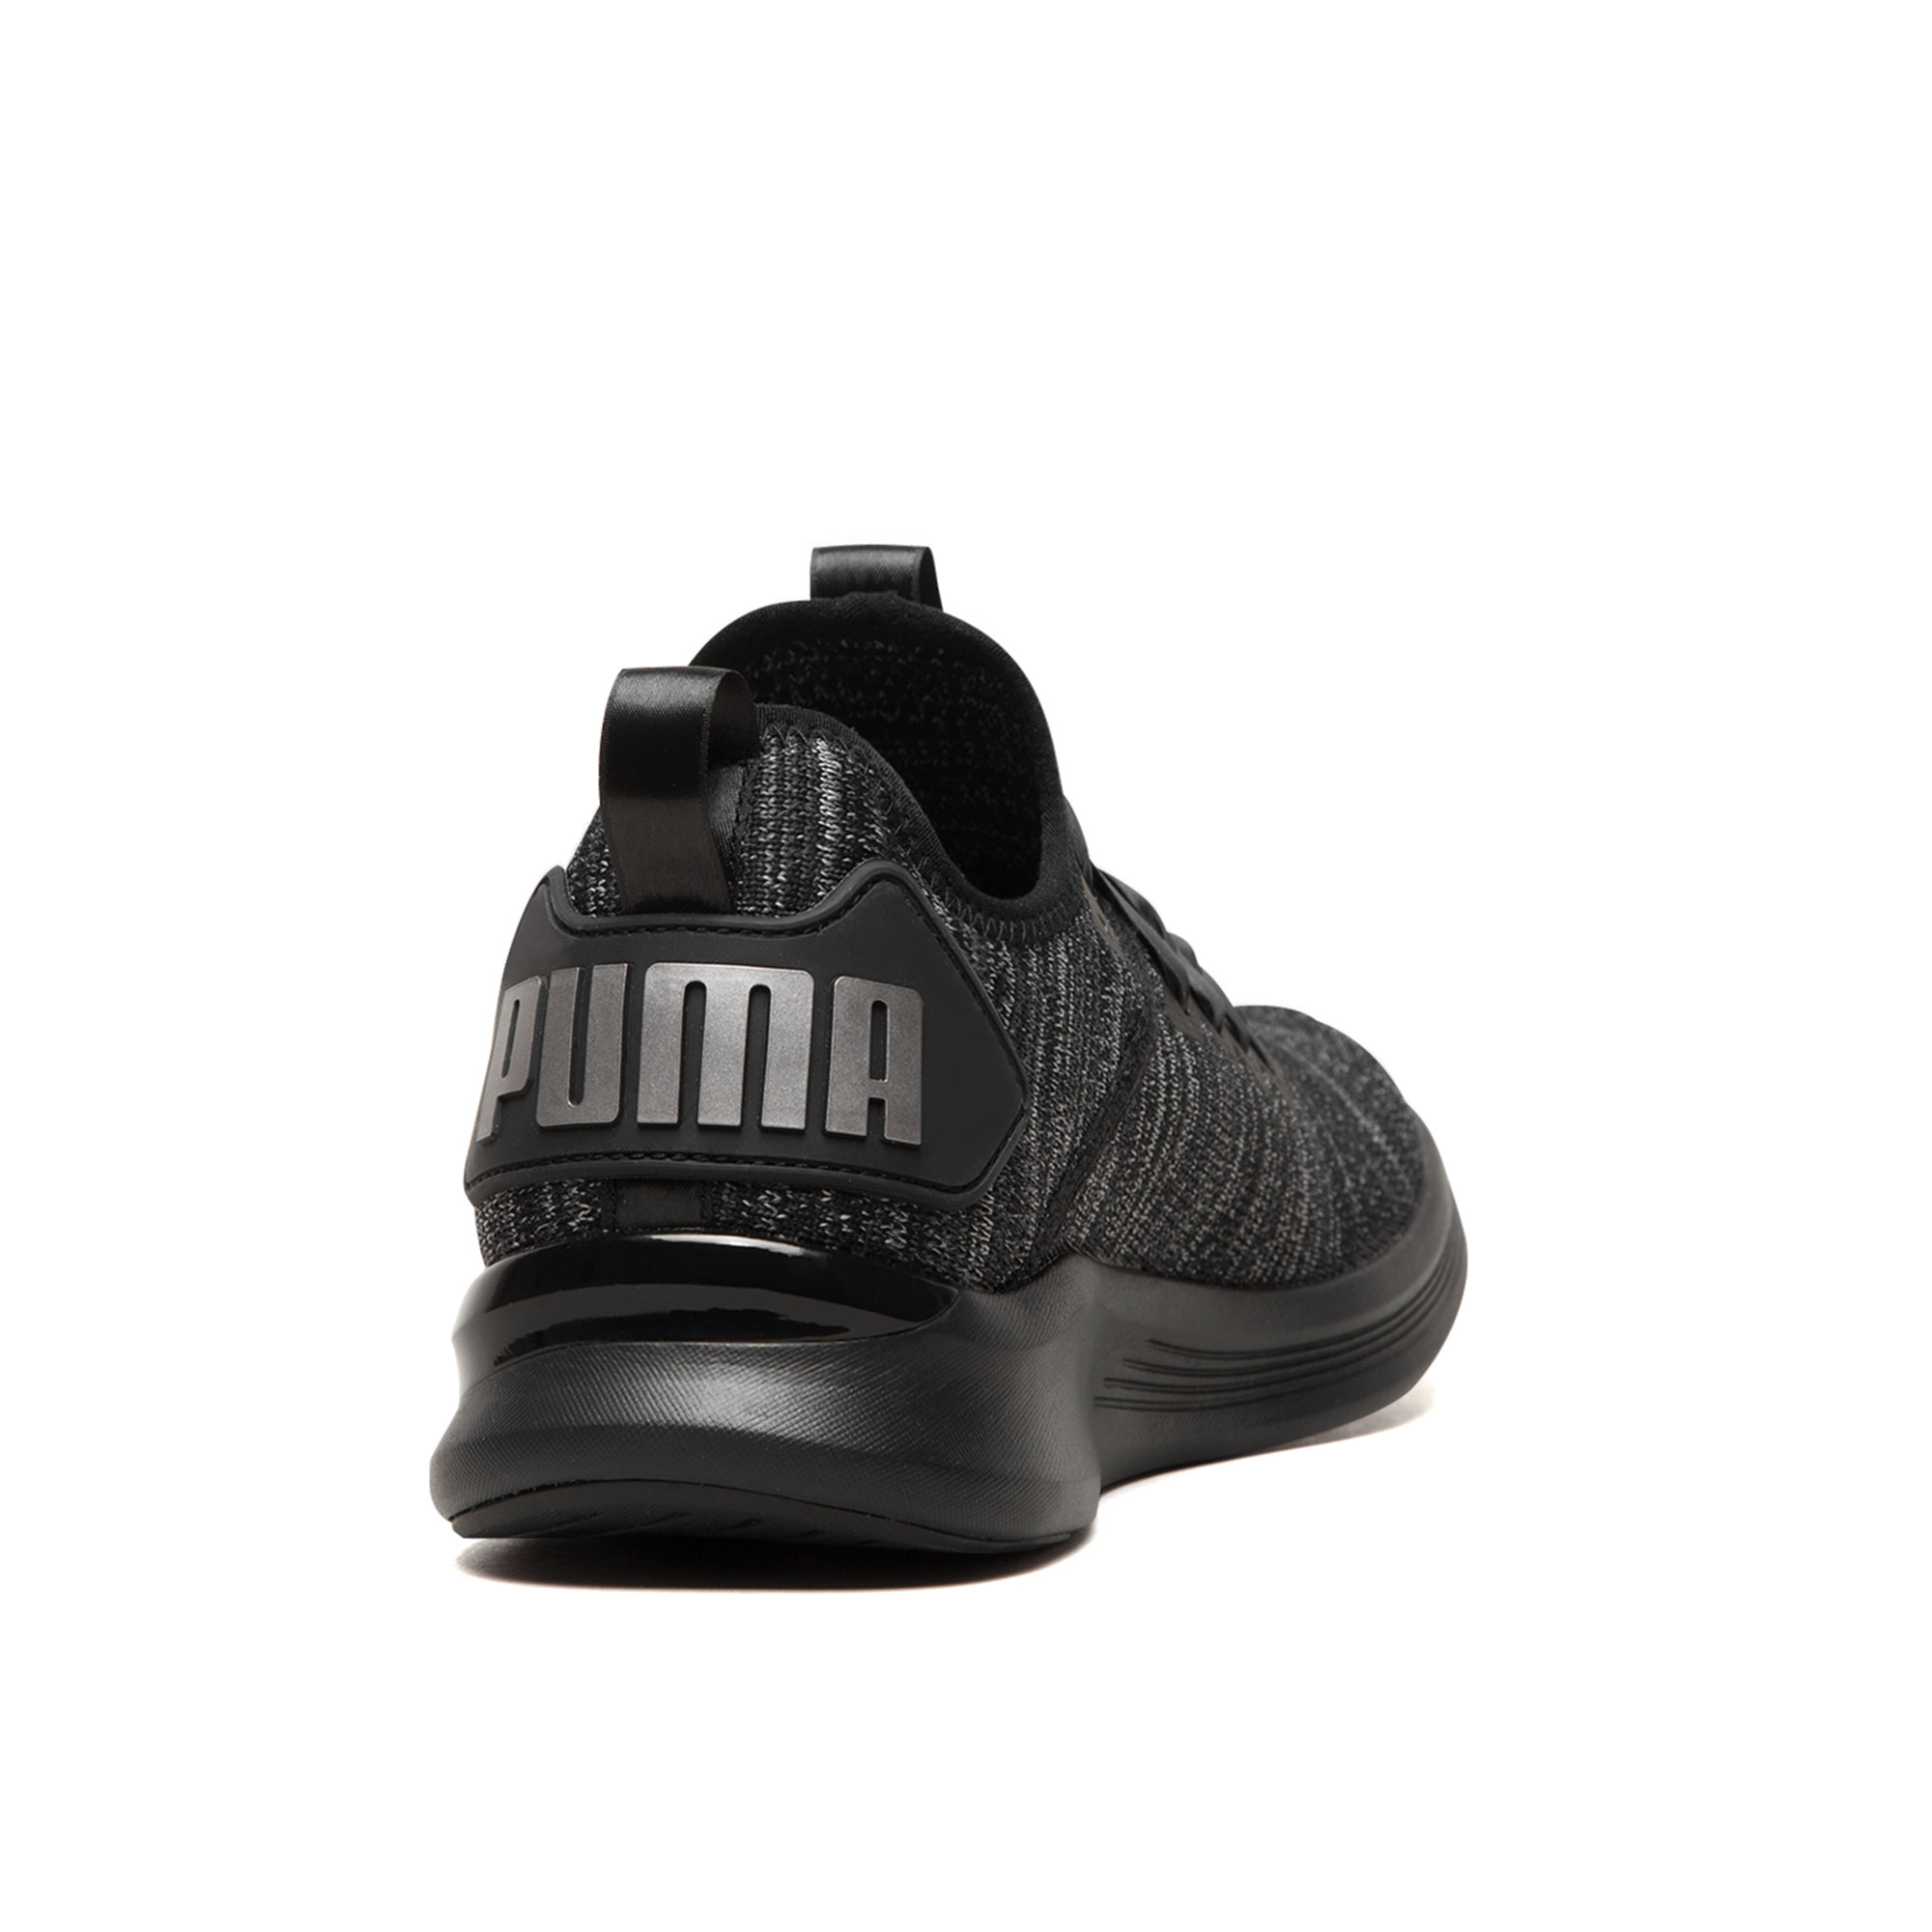 half off 9ee84 0ab4e PUMA Hummer Official Women's Running Shoes IGNITE Flash ...